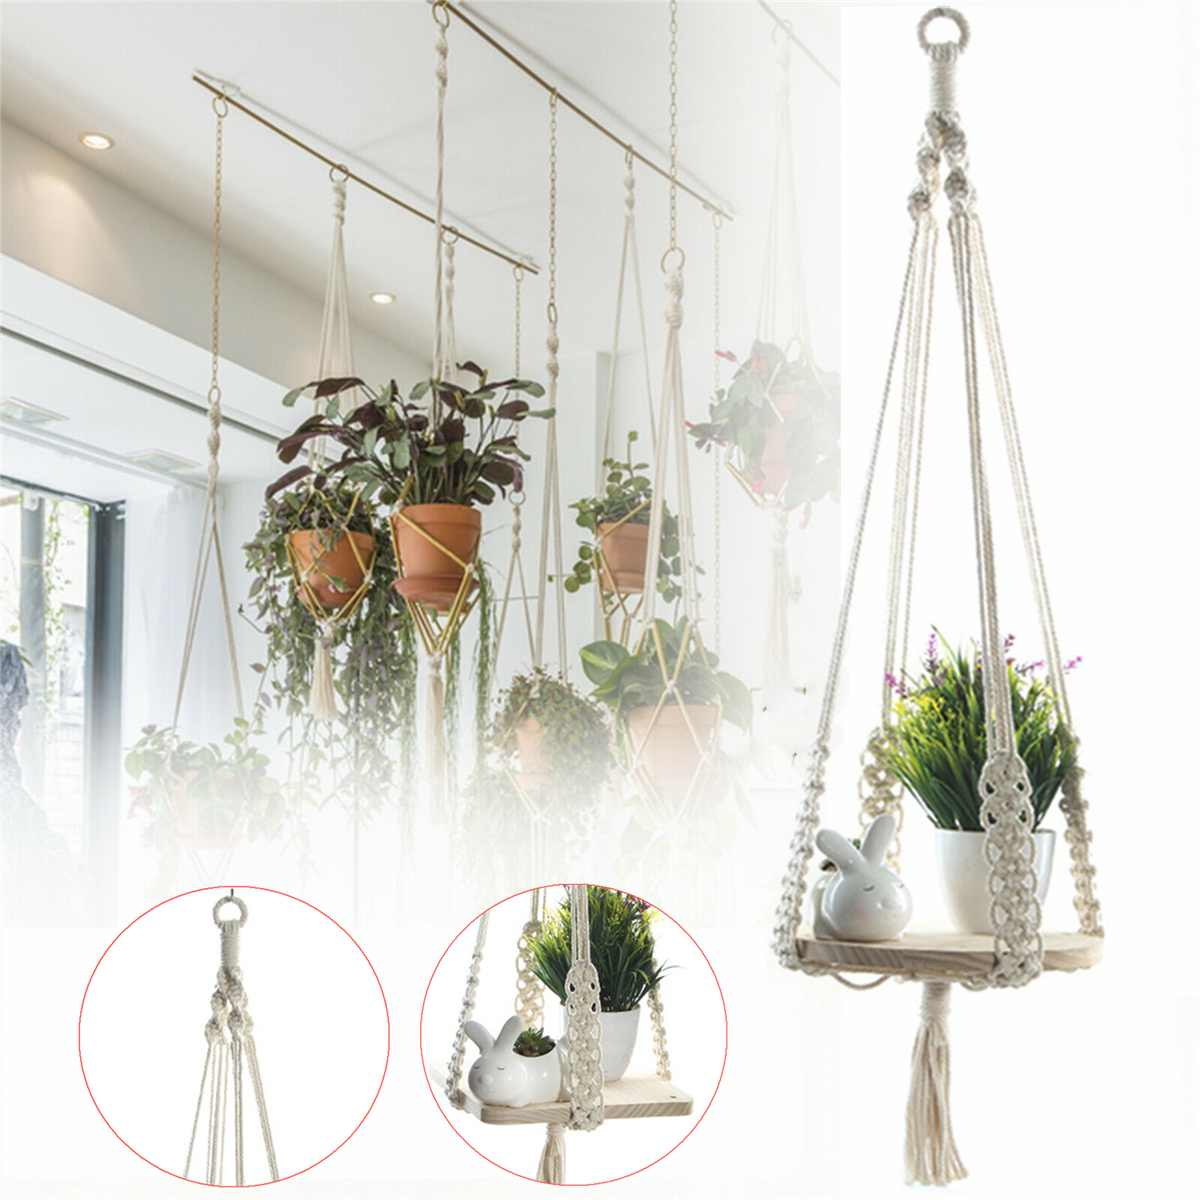 US $17 15 52% OFF|100% Handmade Macrame Shelf Hanging Planter Plant Hanger  Hanging Plant Stand Indoor Plants with Wooden Shelf Home Decor-in Hanging